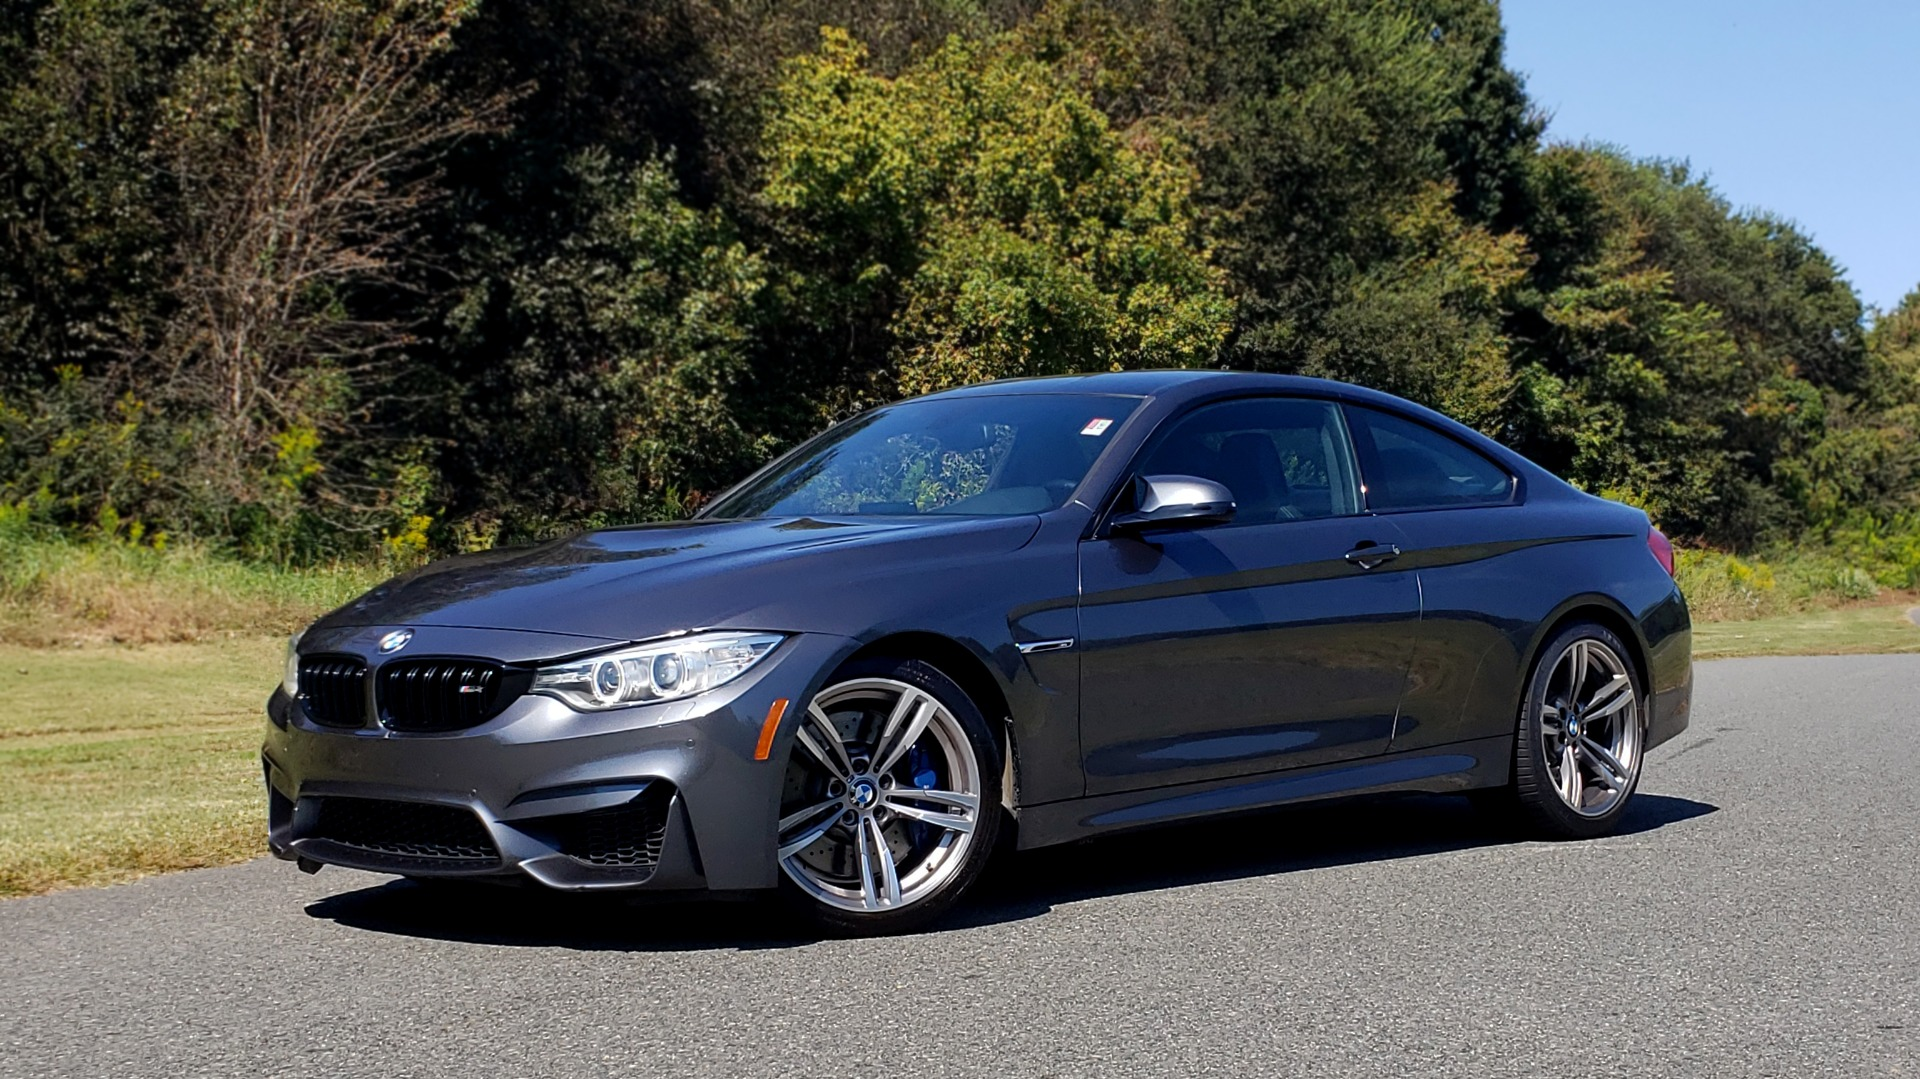 Used 2015 BMW M4 COUPE / EXEC PKG / ADAPT M SUSP / CF ROOF / NAV / REARVIEW for sale Sold at Formula Imports in Charlotte NC 28227 1